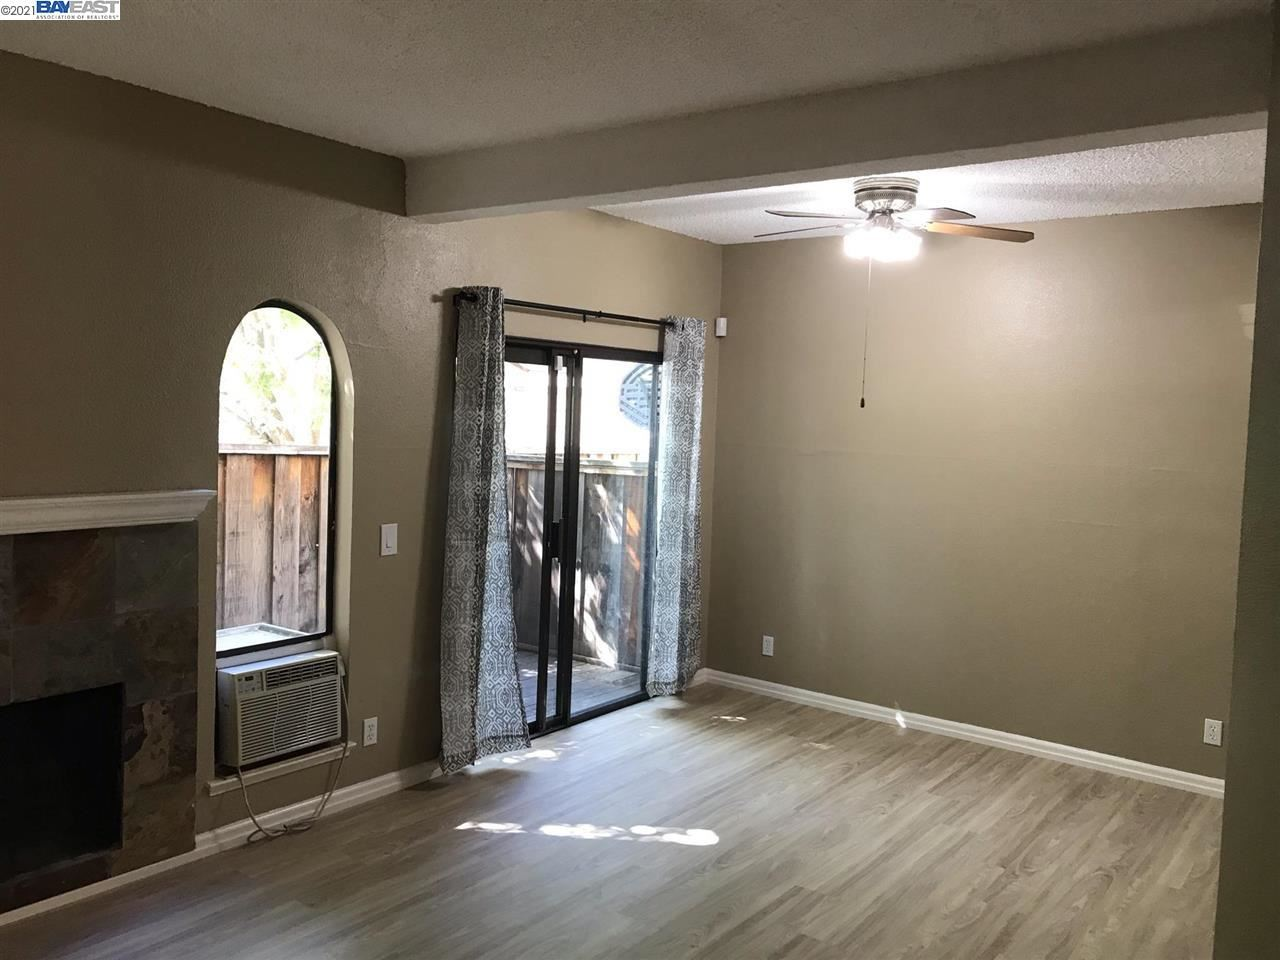 Photo of 1255 Detroit Ave #2, CONCORD, CA 94520 (MLS # 40949122)